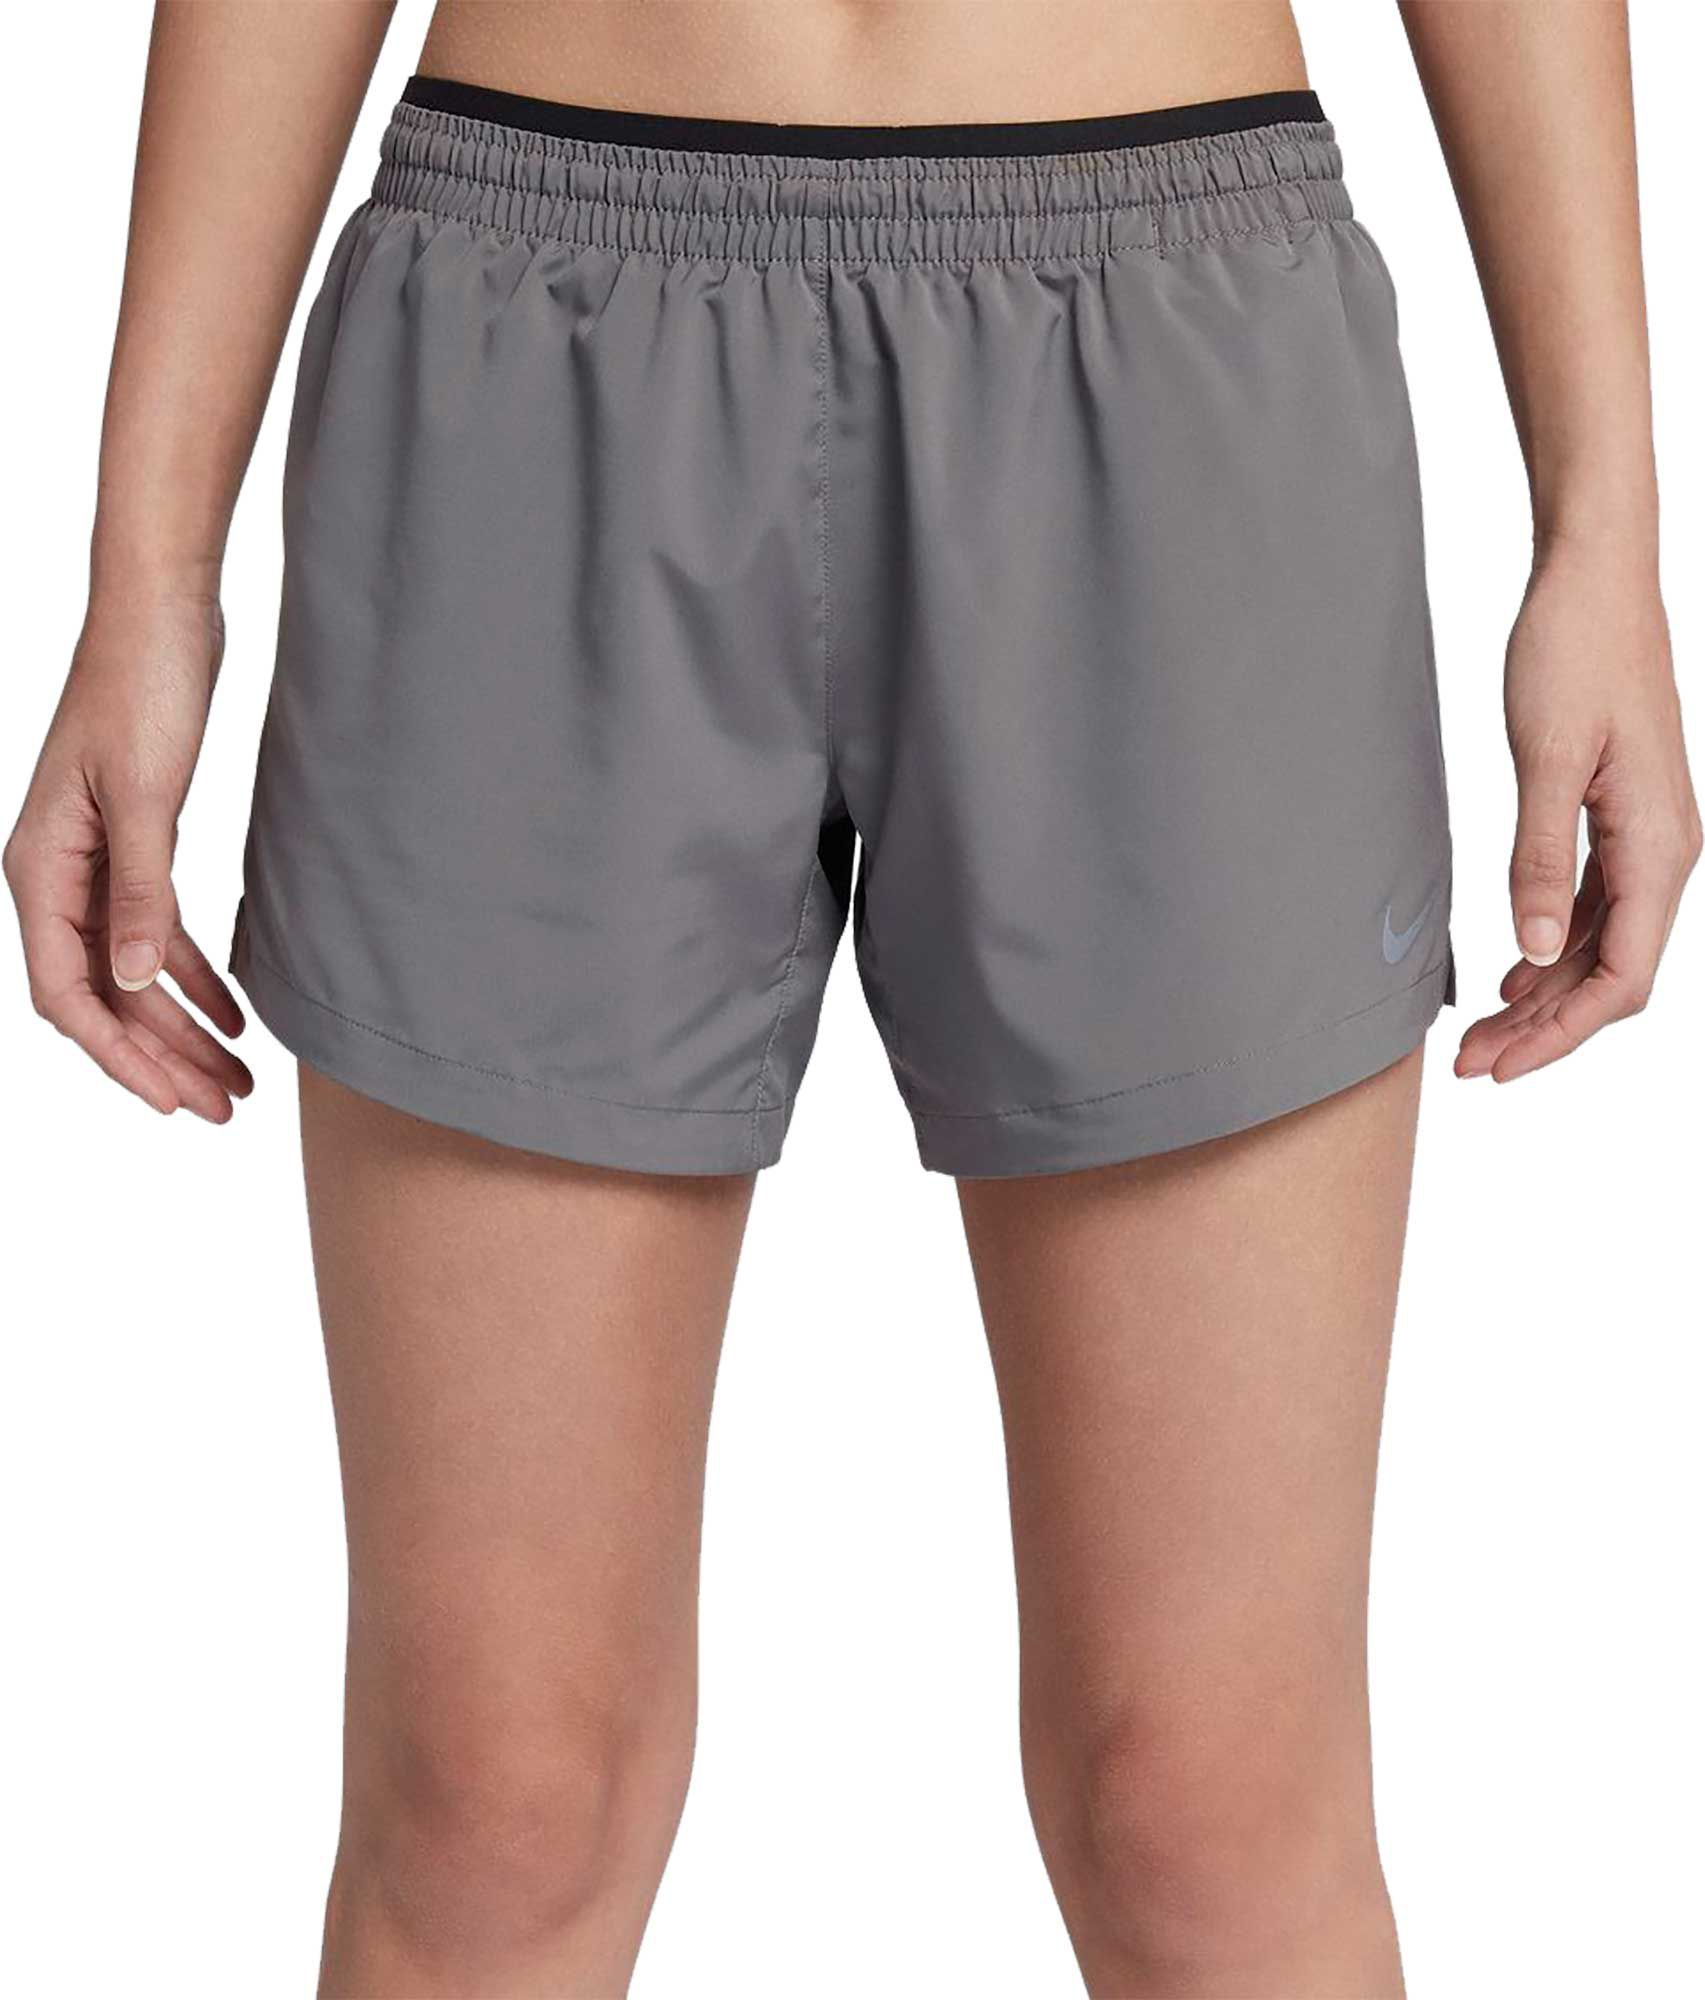 a95035a7be205 Nike Women's Elevate 5'' Running Shorts in 2019 | Products | Running ...